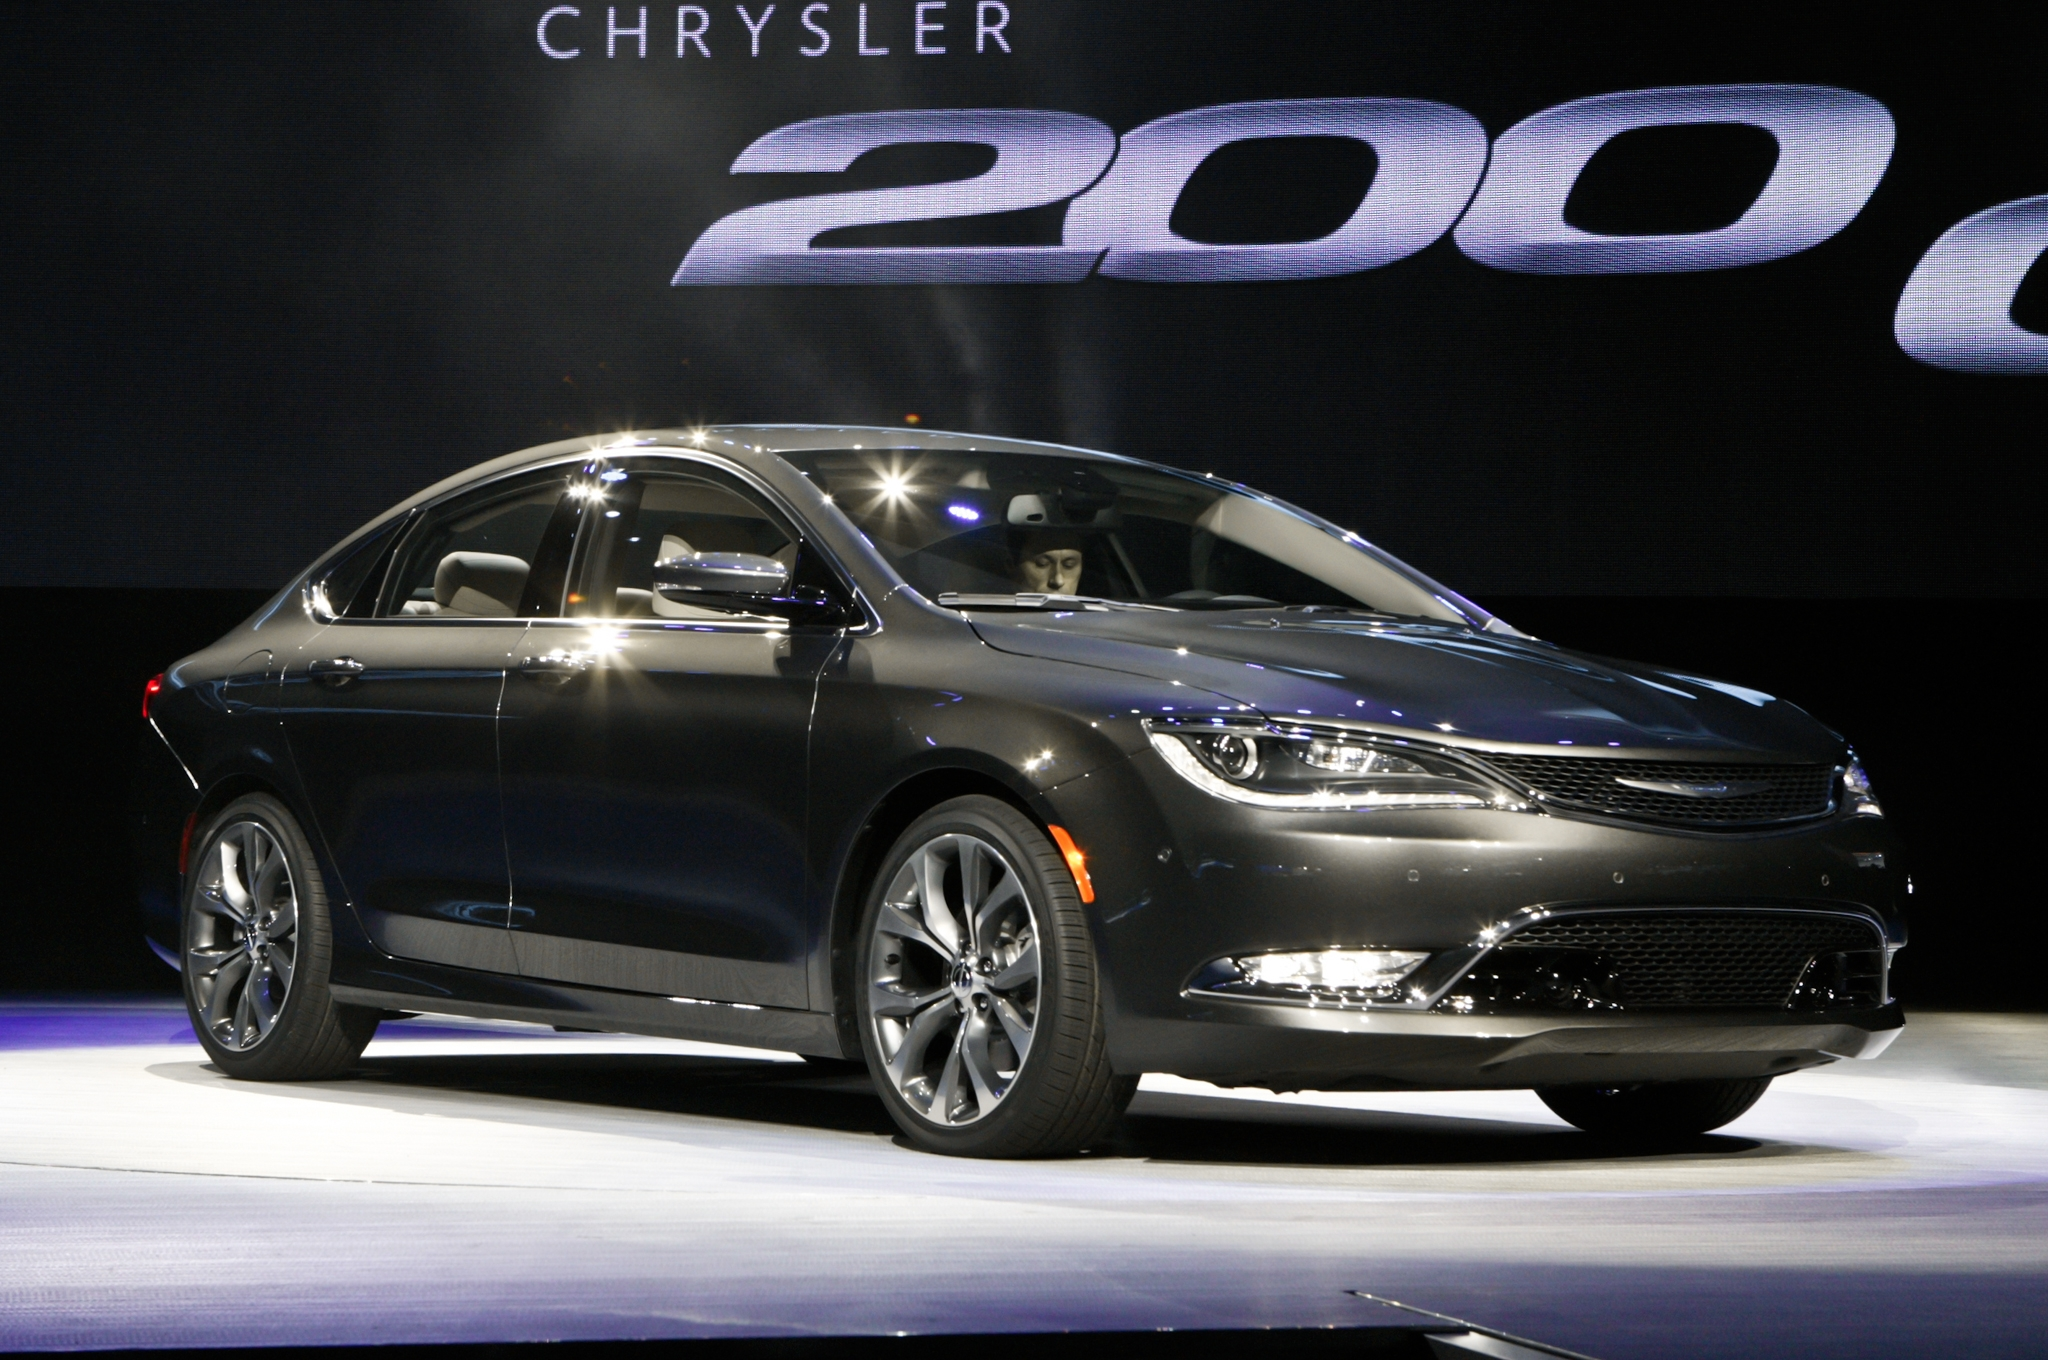 2015 Chrysler 200 photo - 2